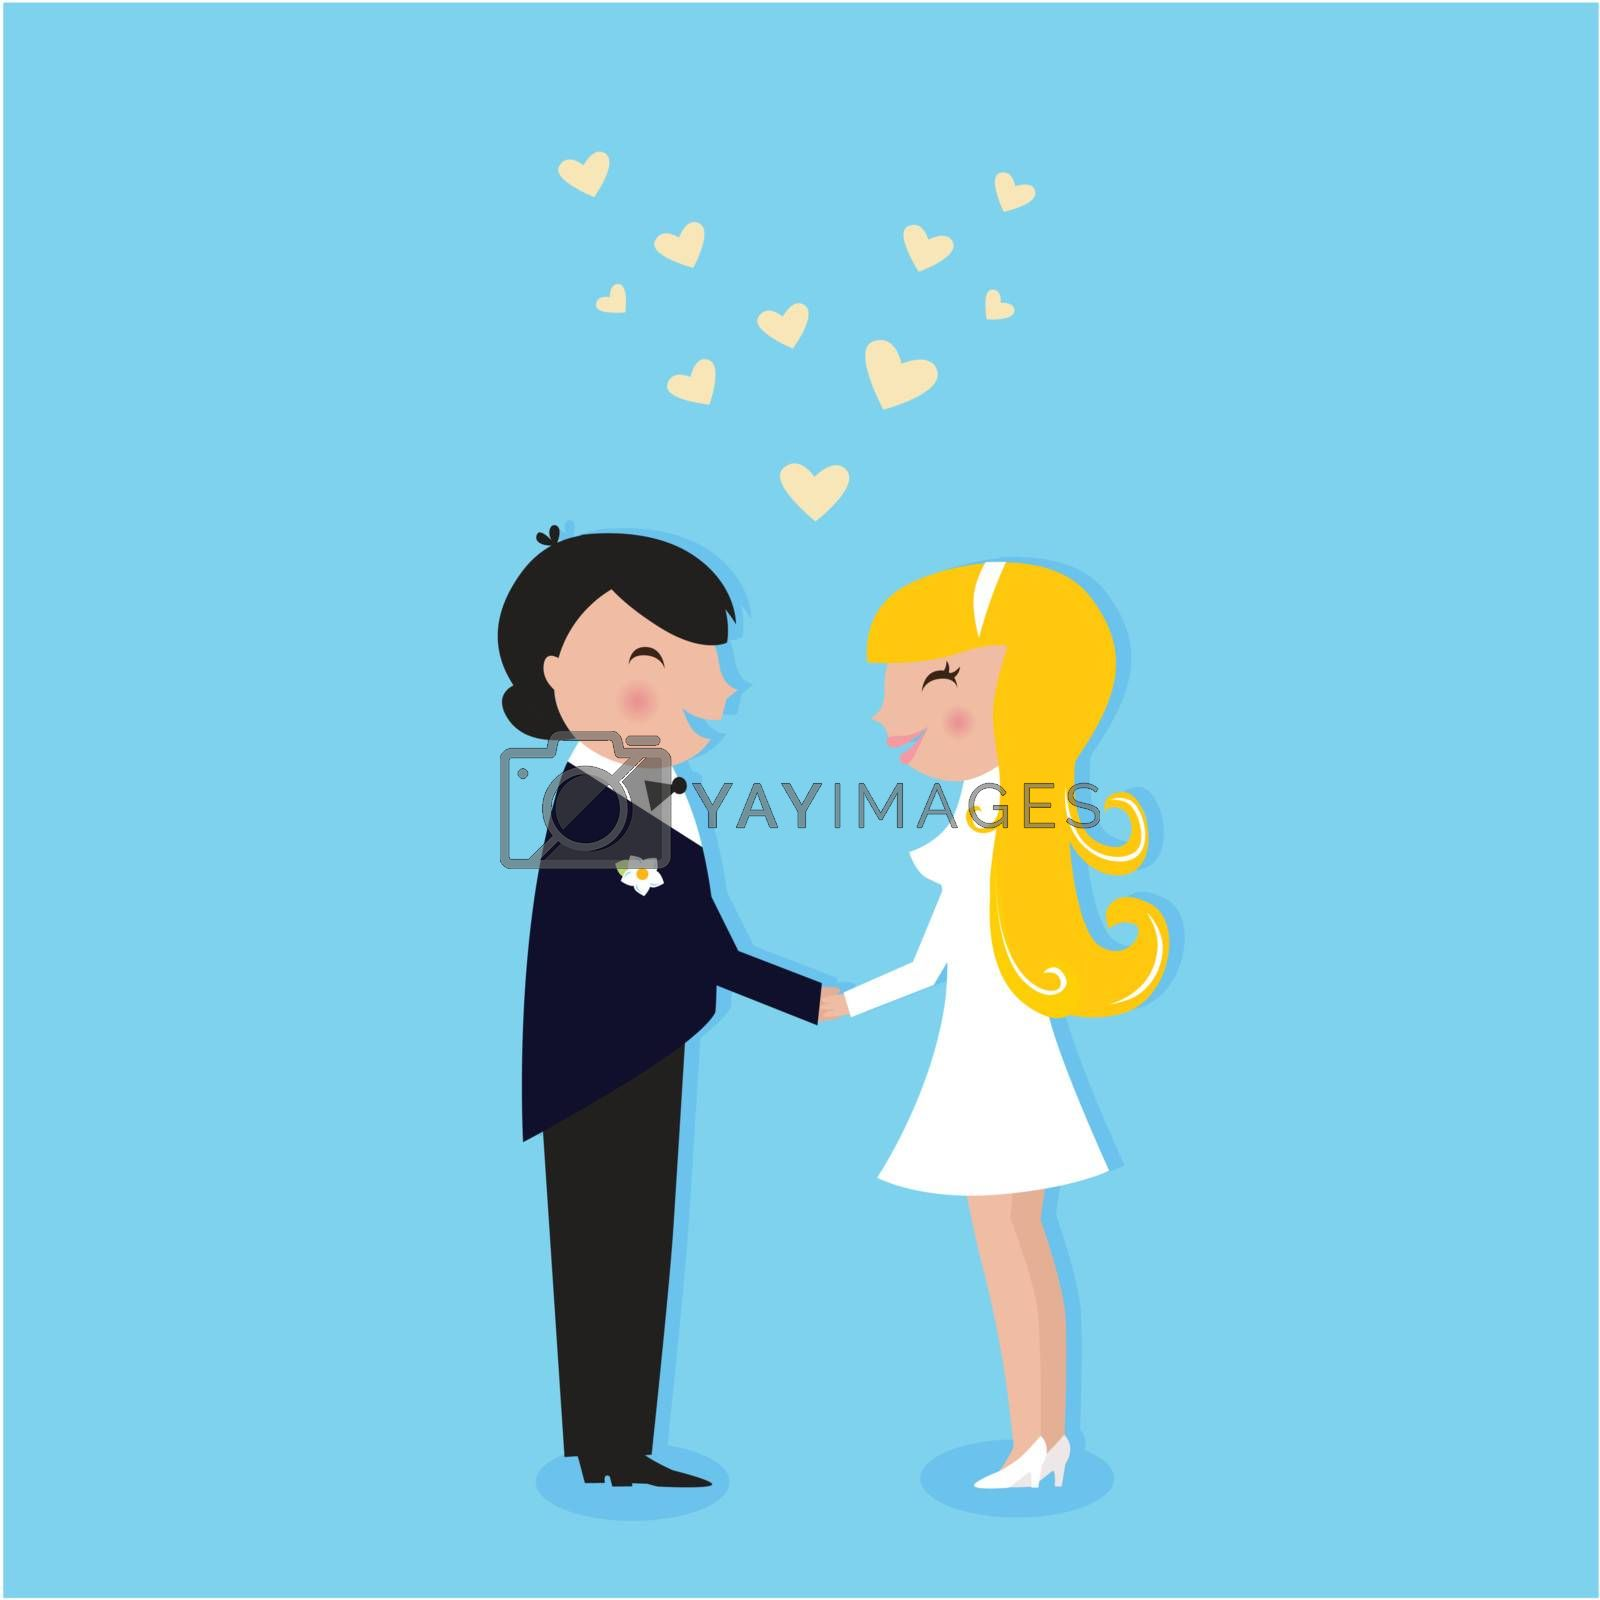 Cute Bride and Groom. Vector illustration.